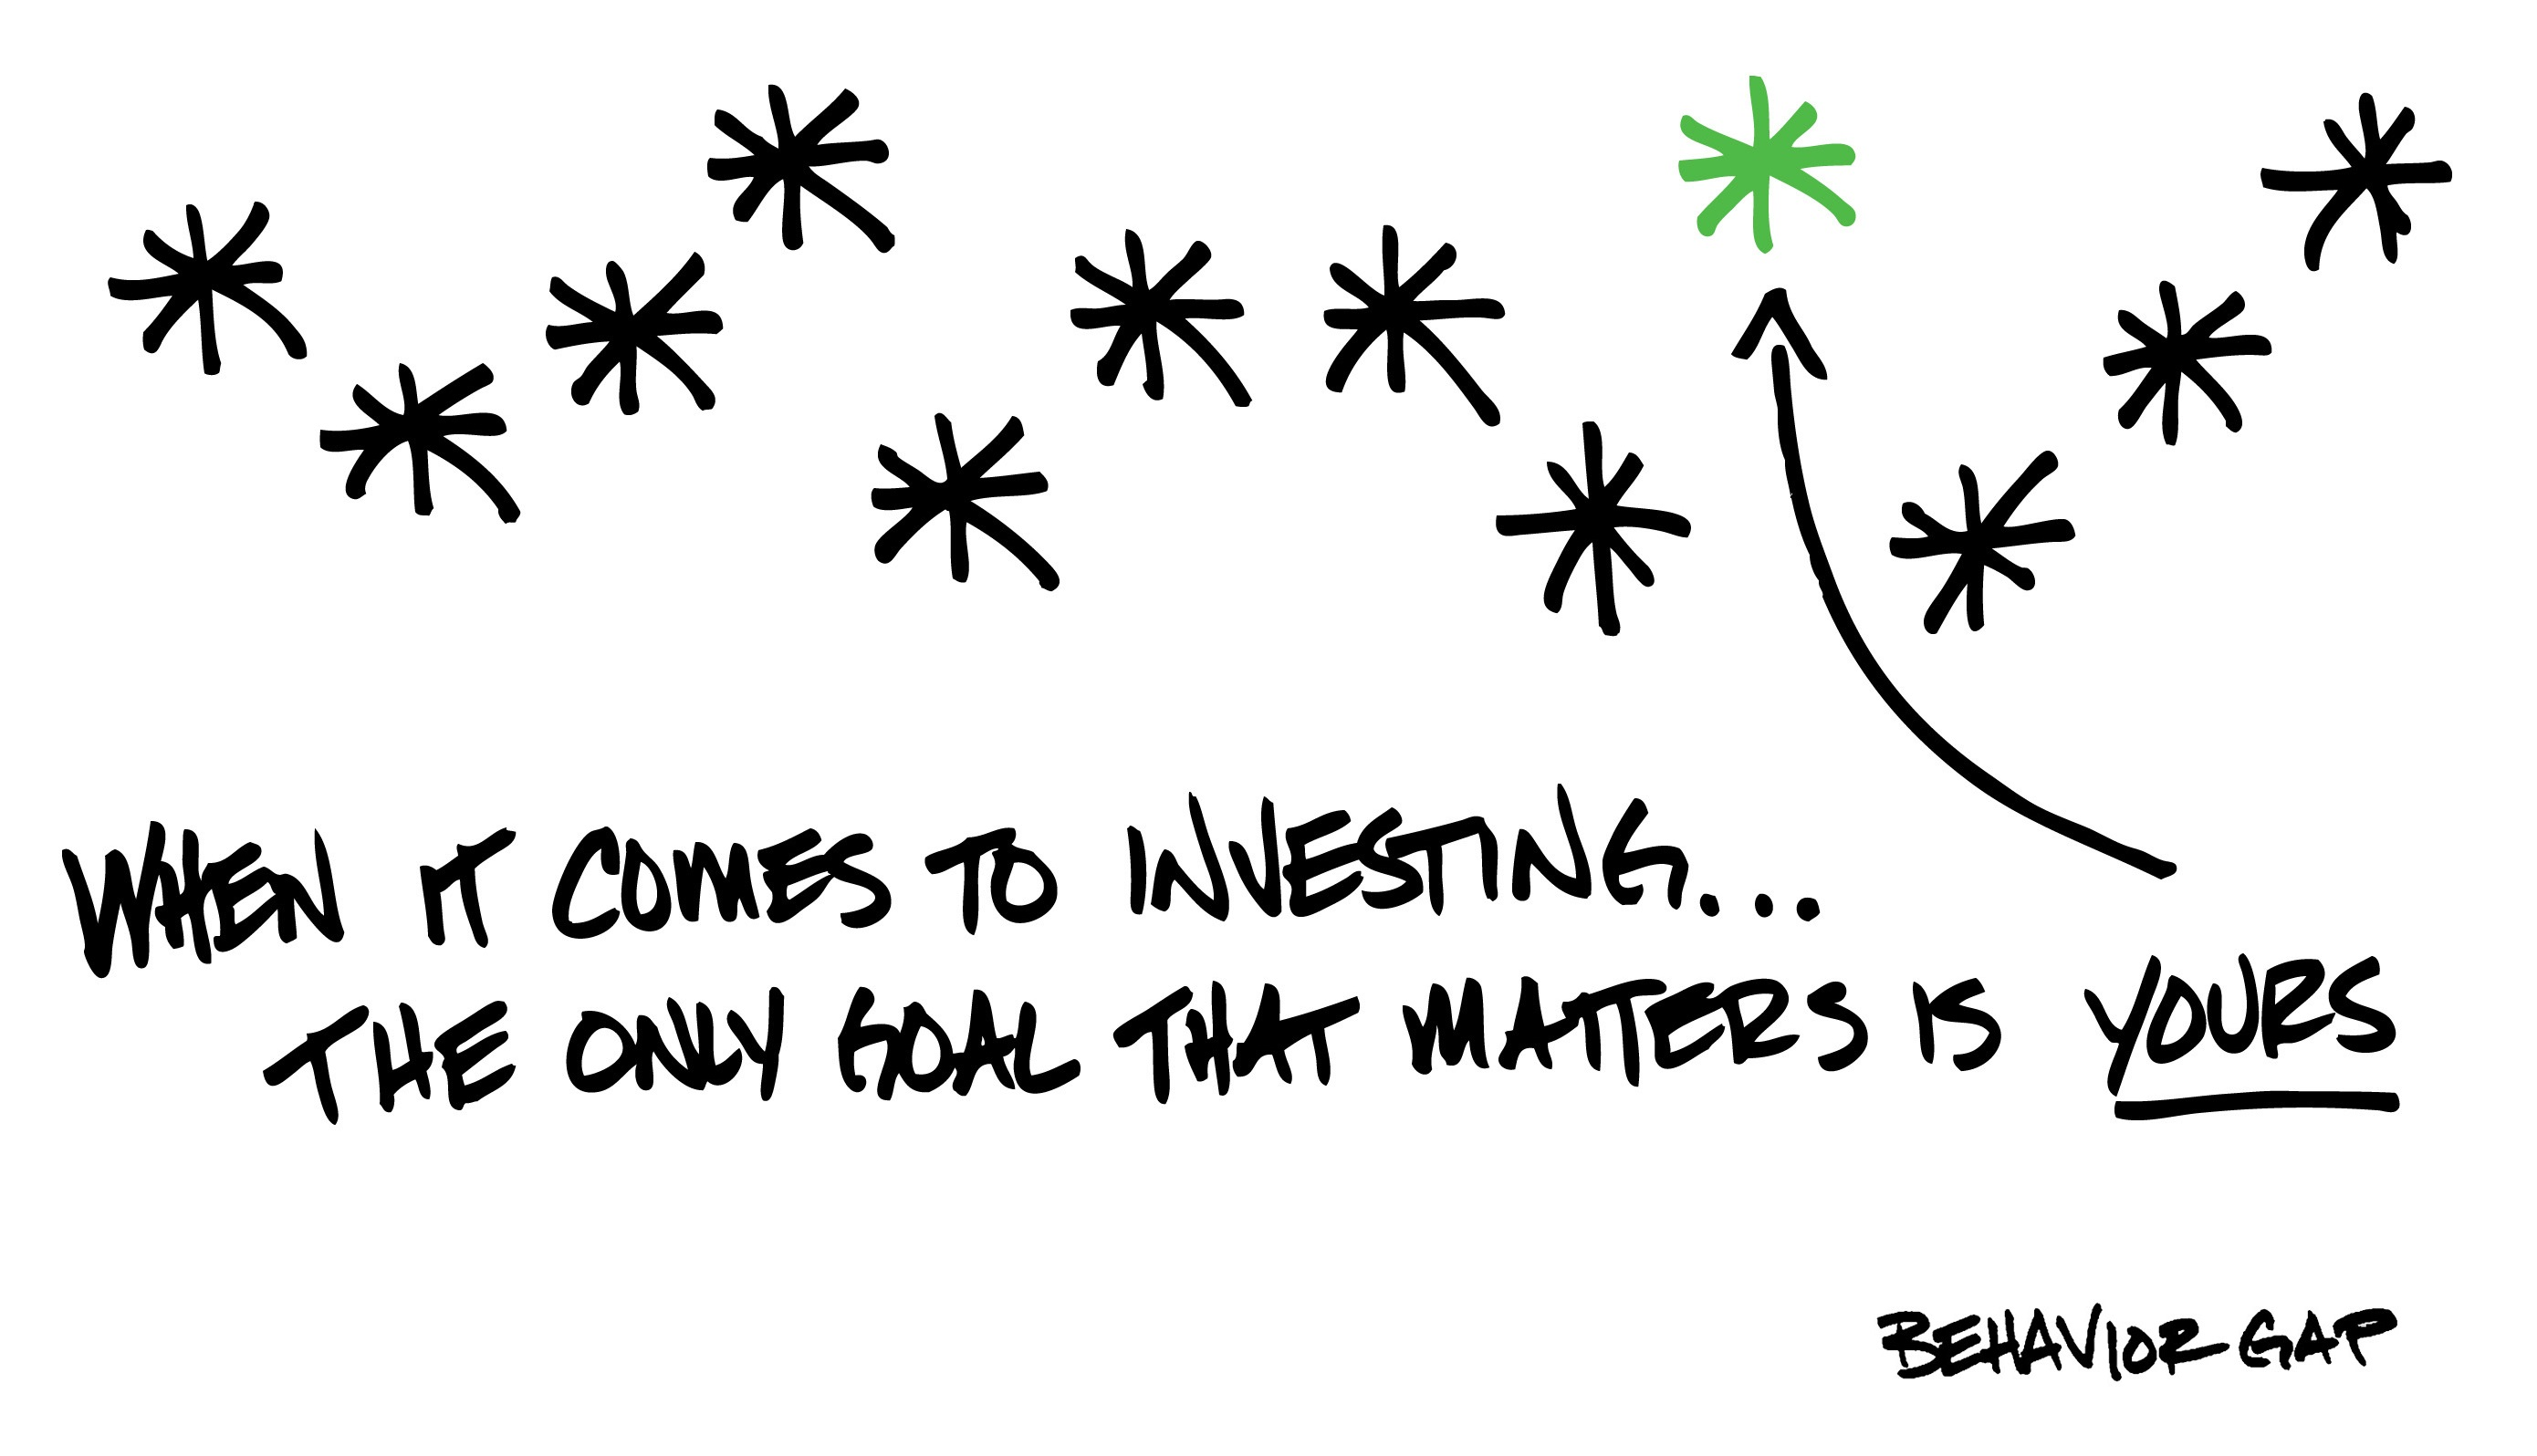 When it comes to investing...The only goal that matters is YOURS!